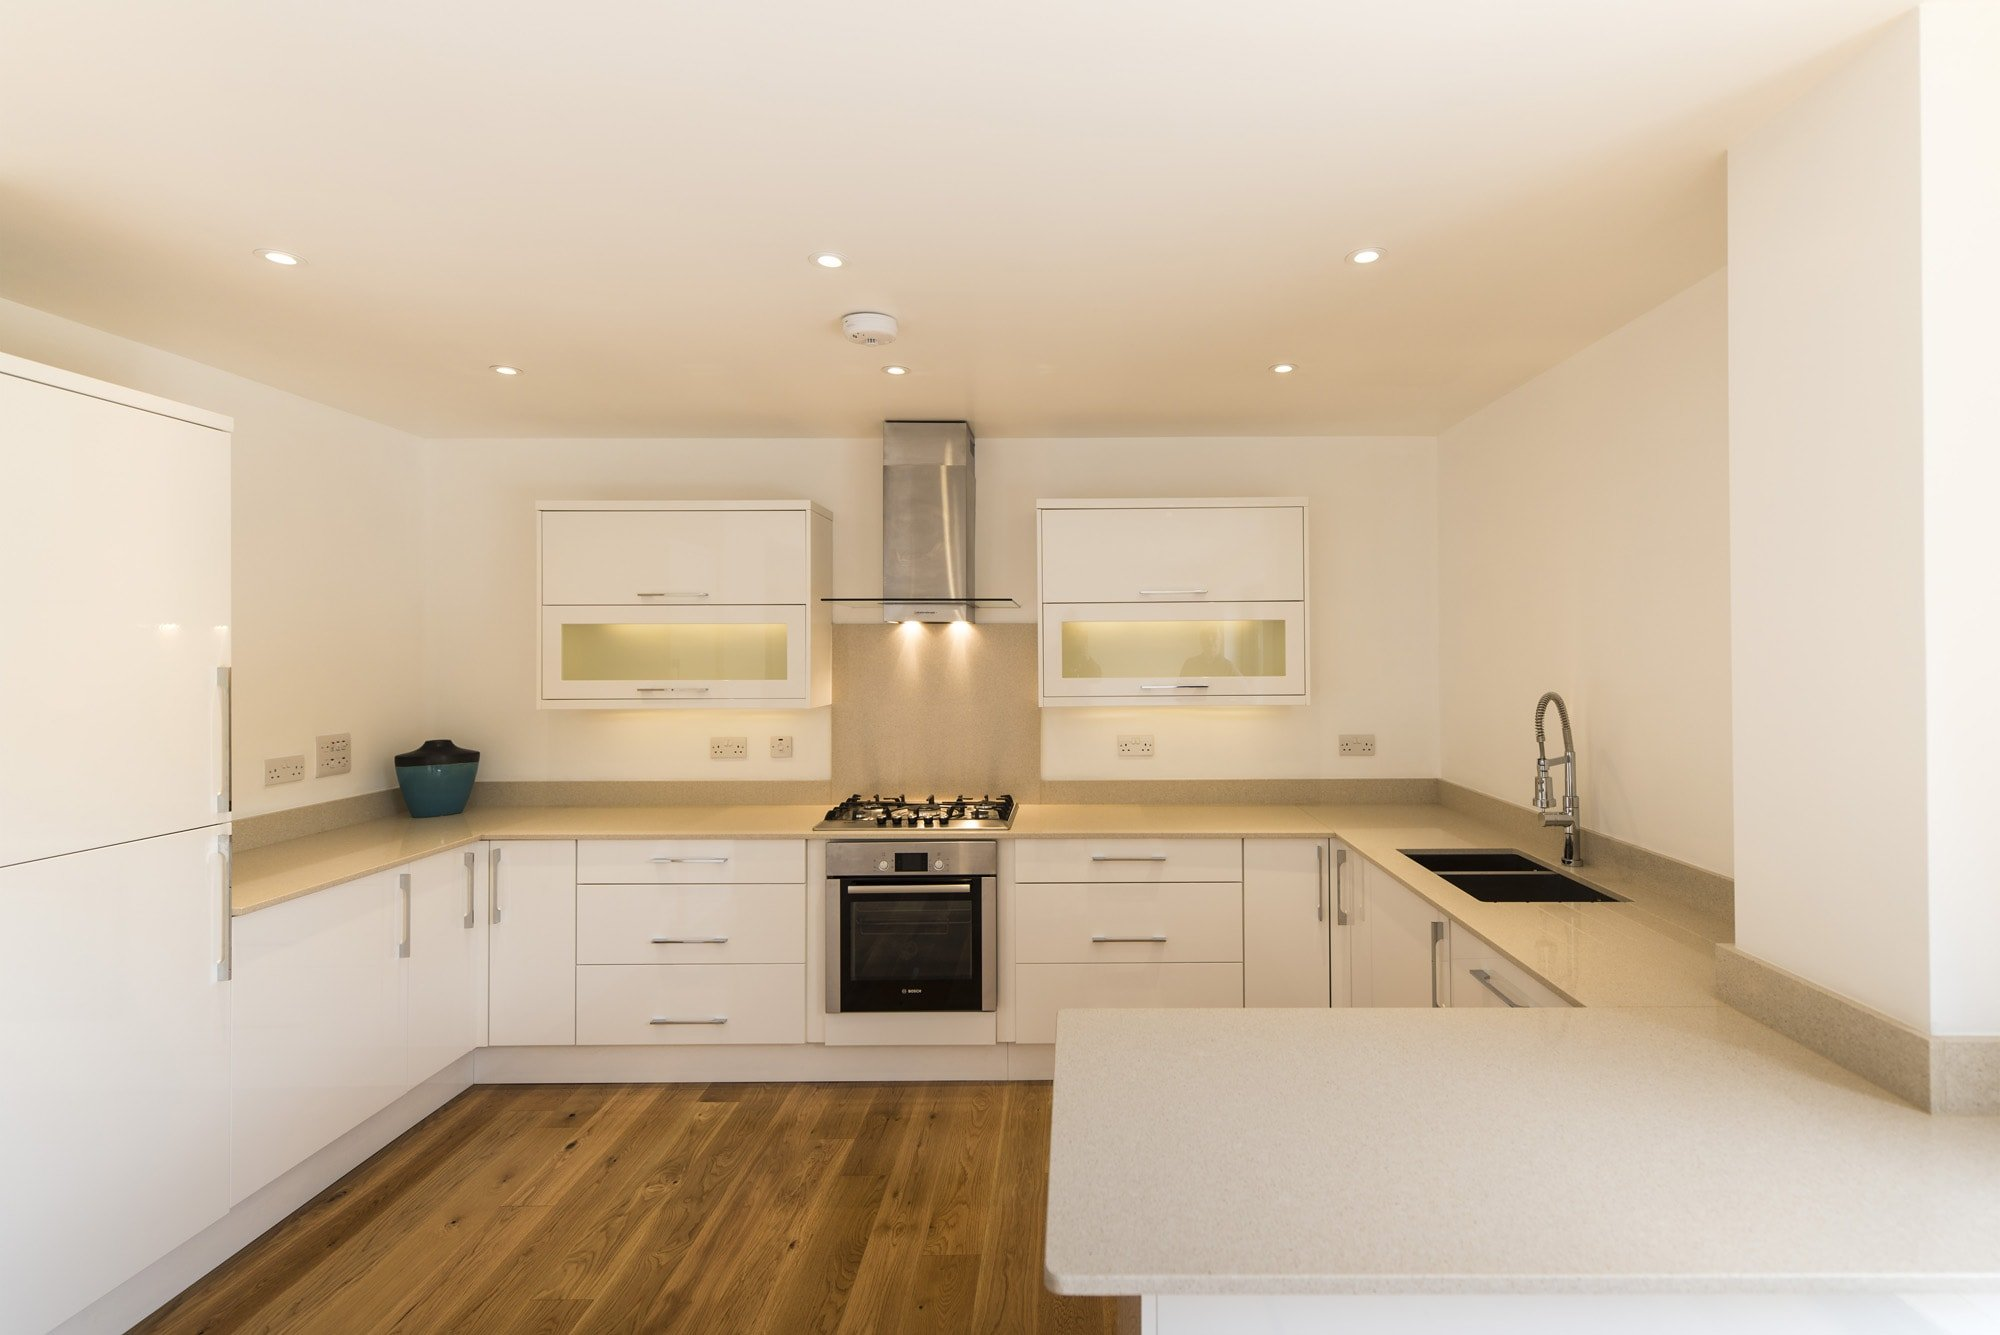 silestone_blanco_city_20mm_ashford_middlesex_130455_a_kitchen-min